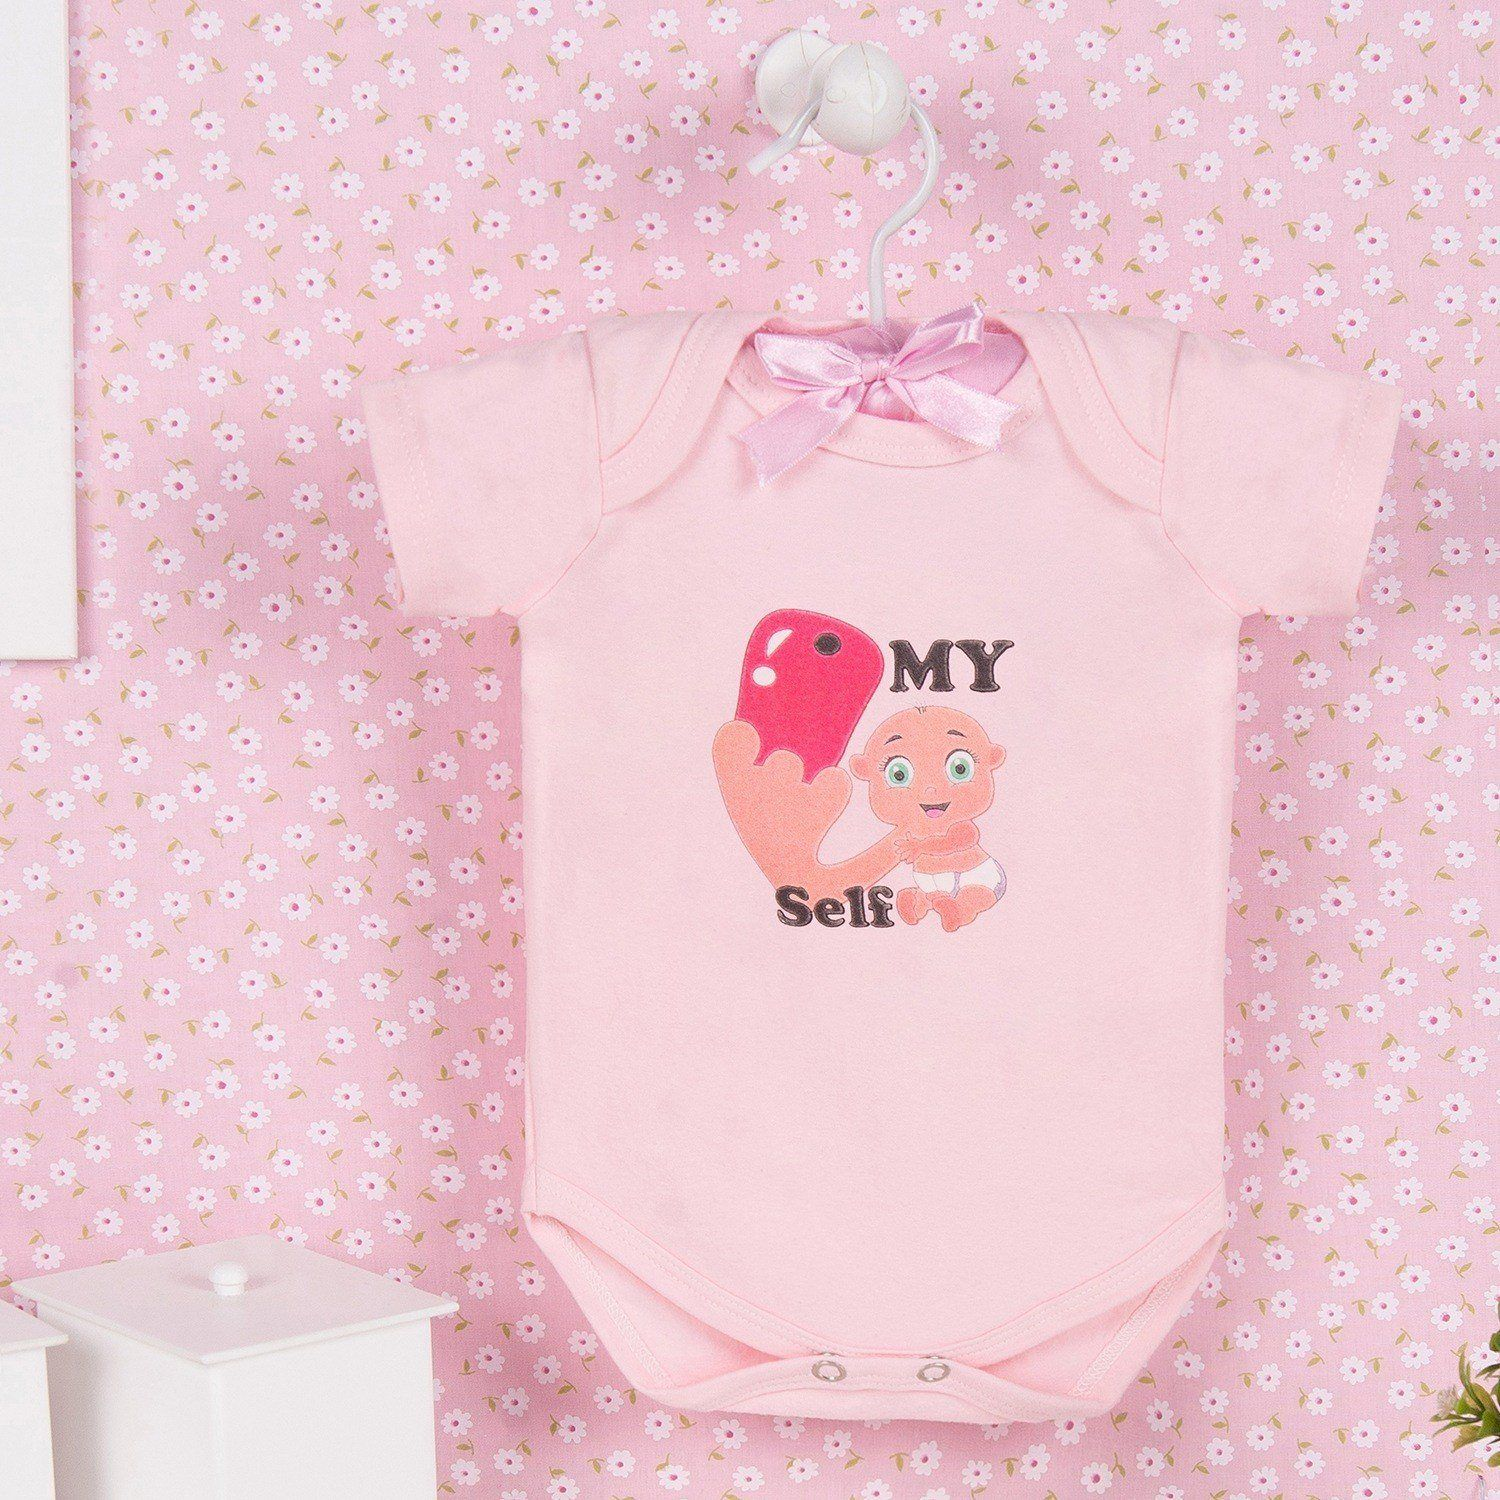 Body Manga Curta My Self Rosa 3 a 6 Meses